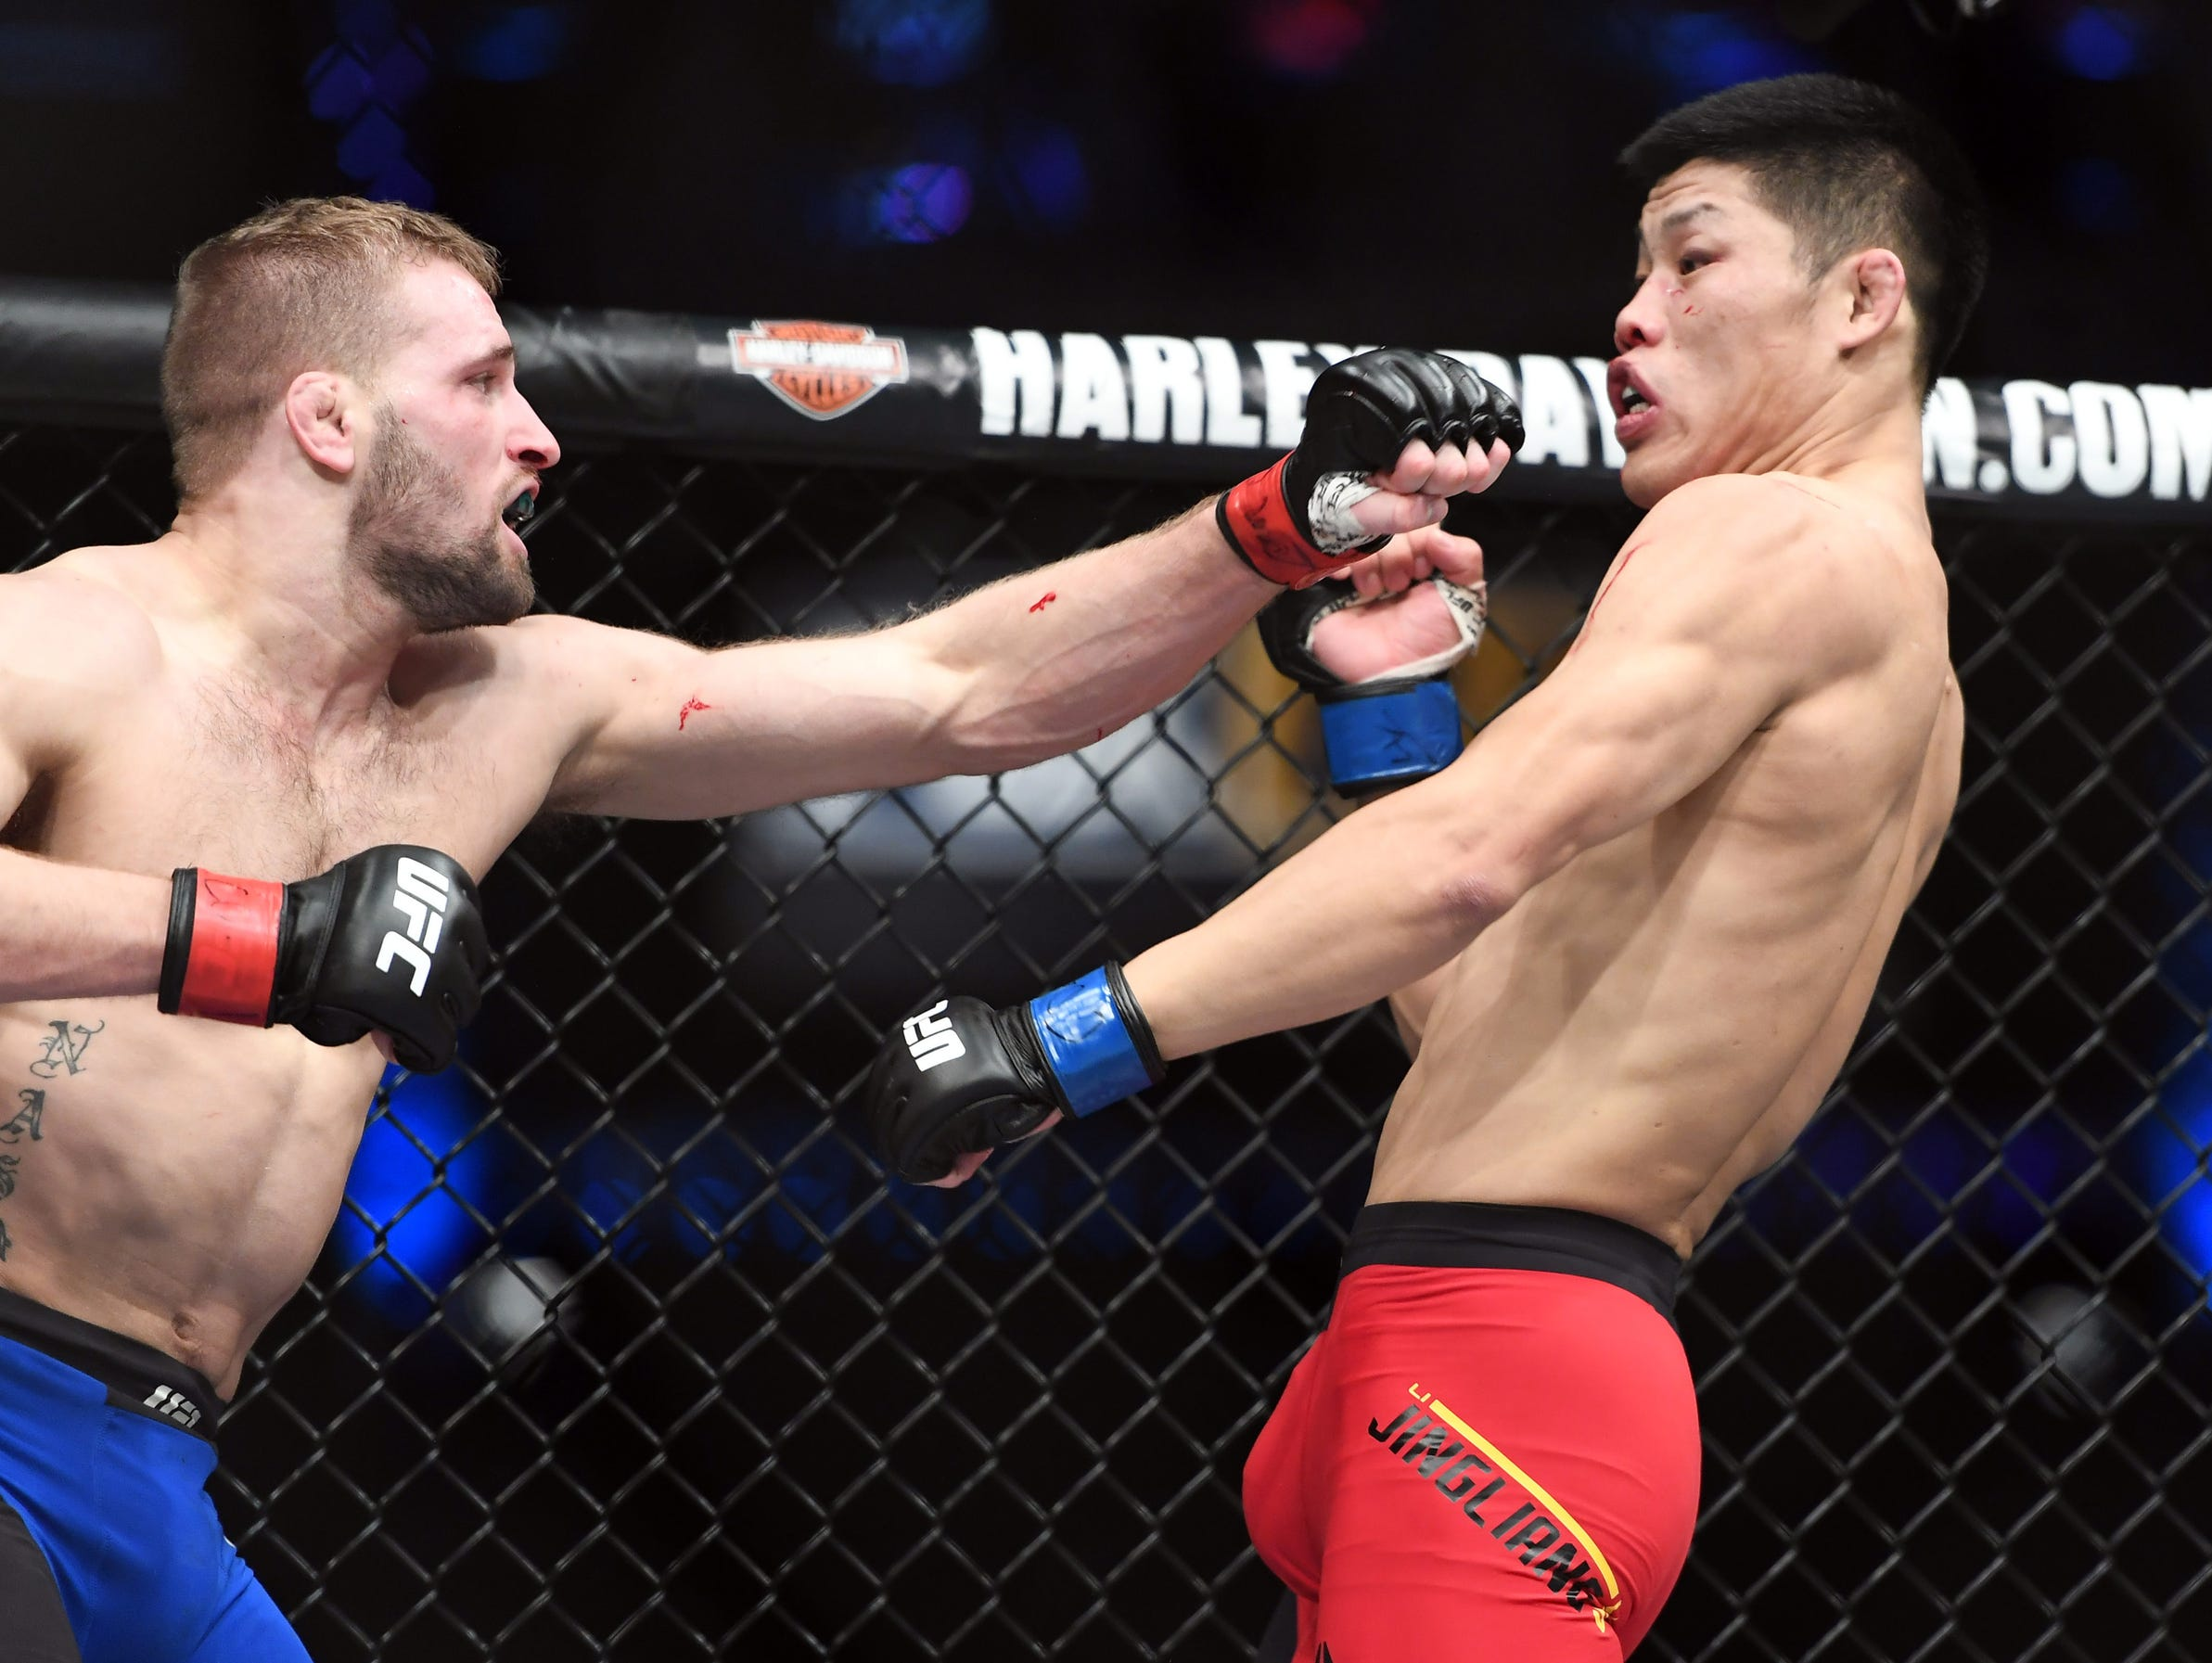 Bobby Nash (red gloves) competes against Li Jingliang (blue gloves) during UFC Fight Night at the Pepsi Center on Saturday.